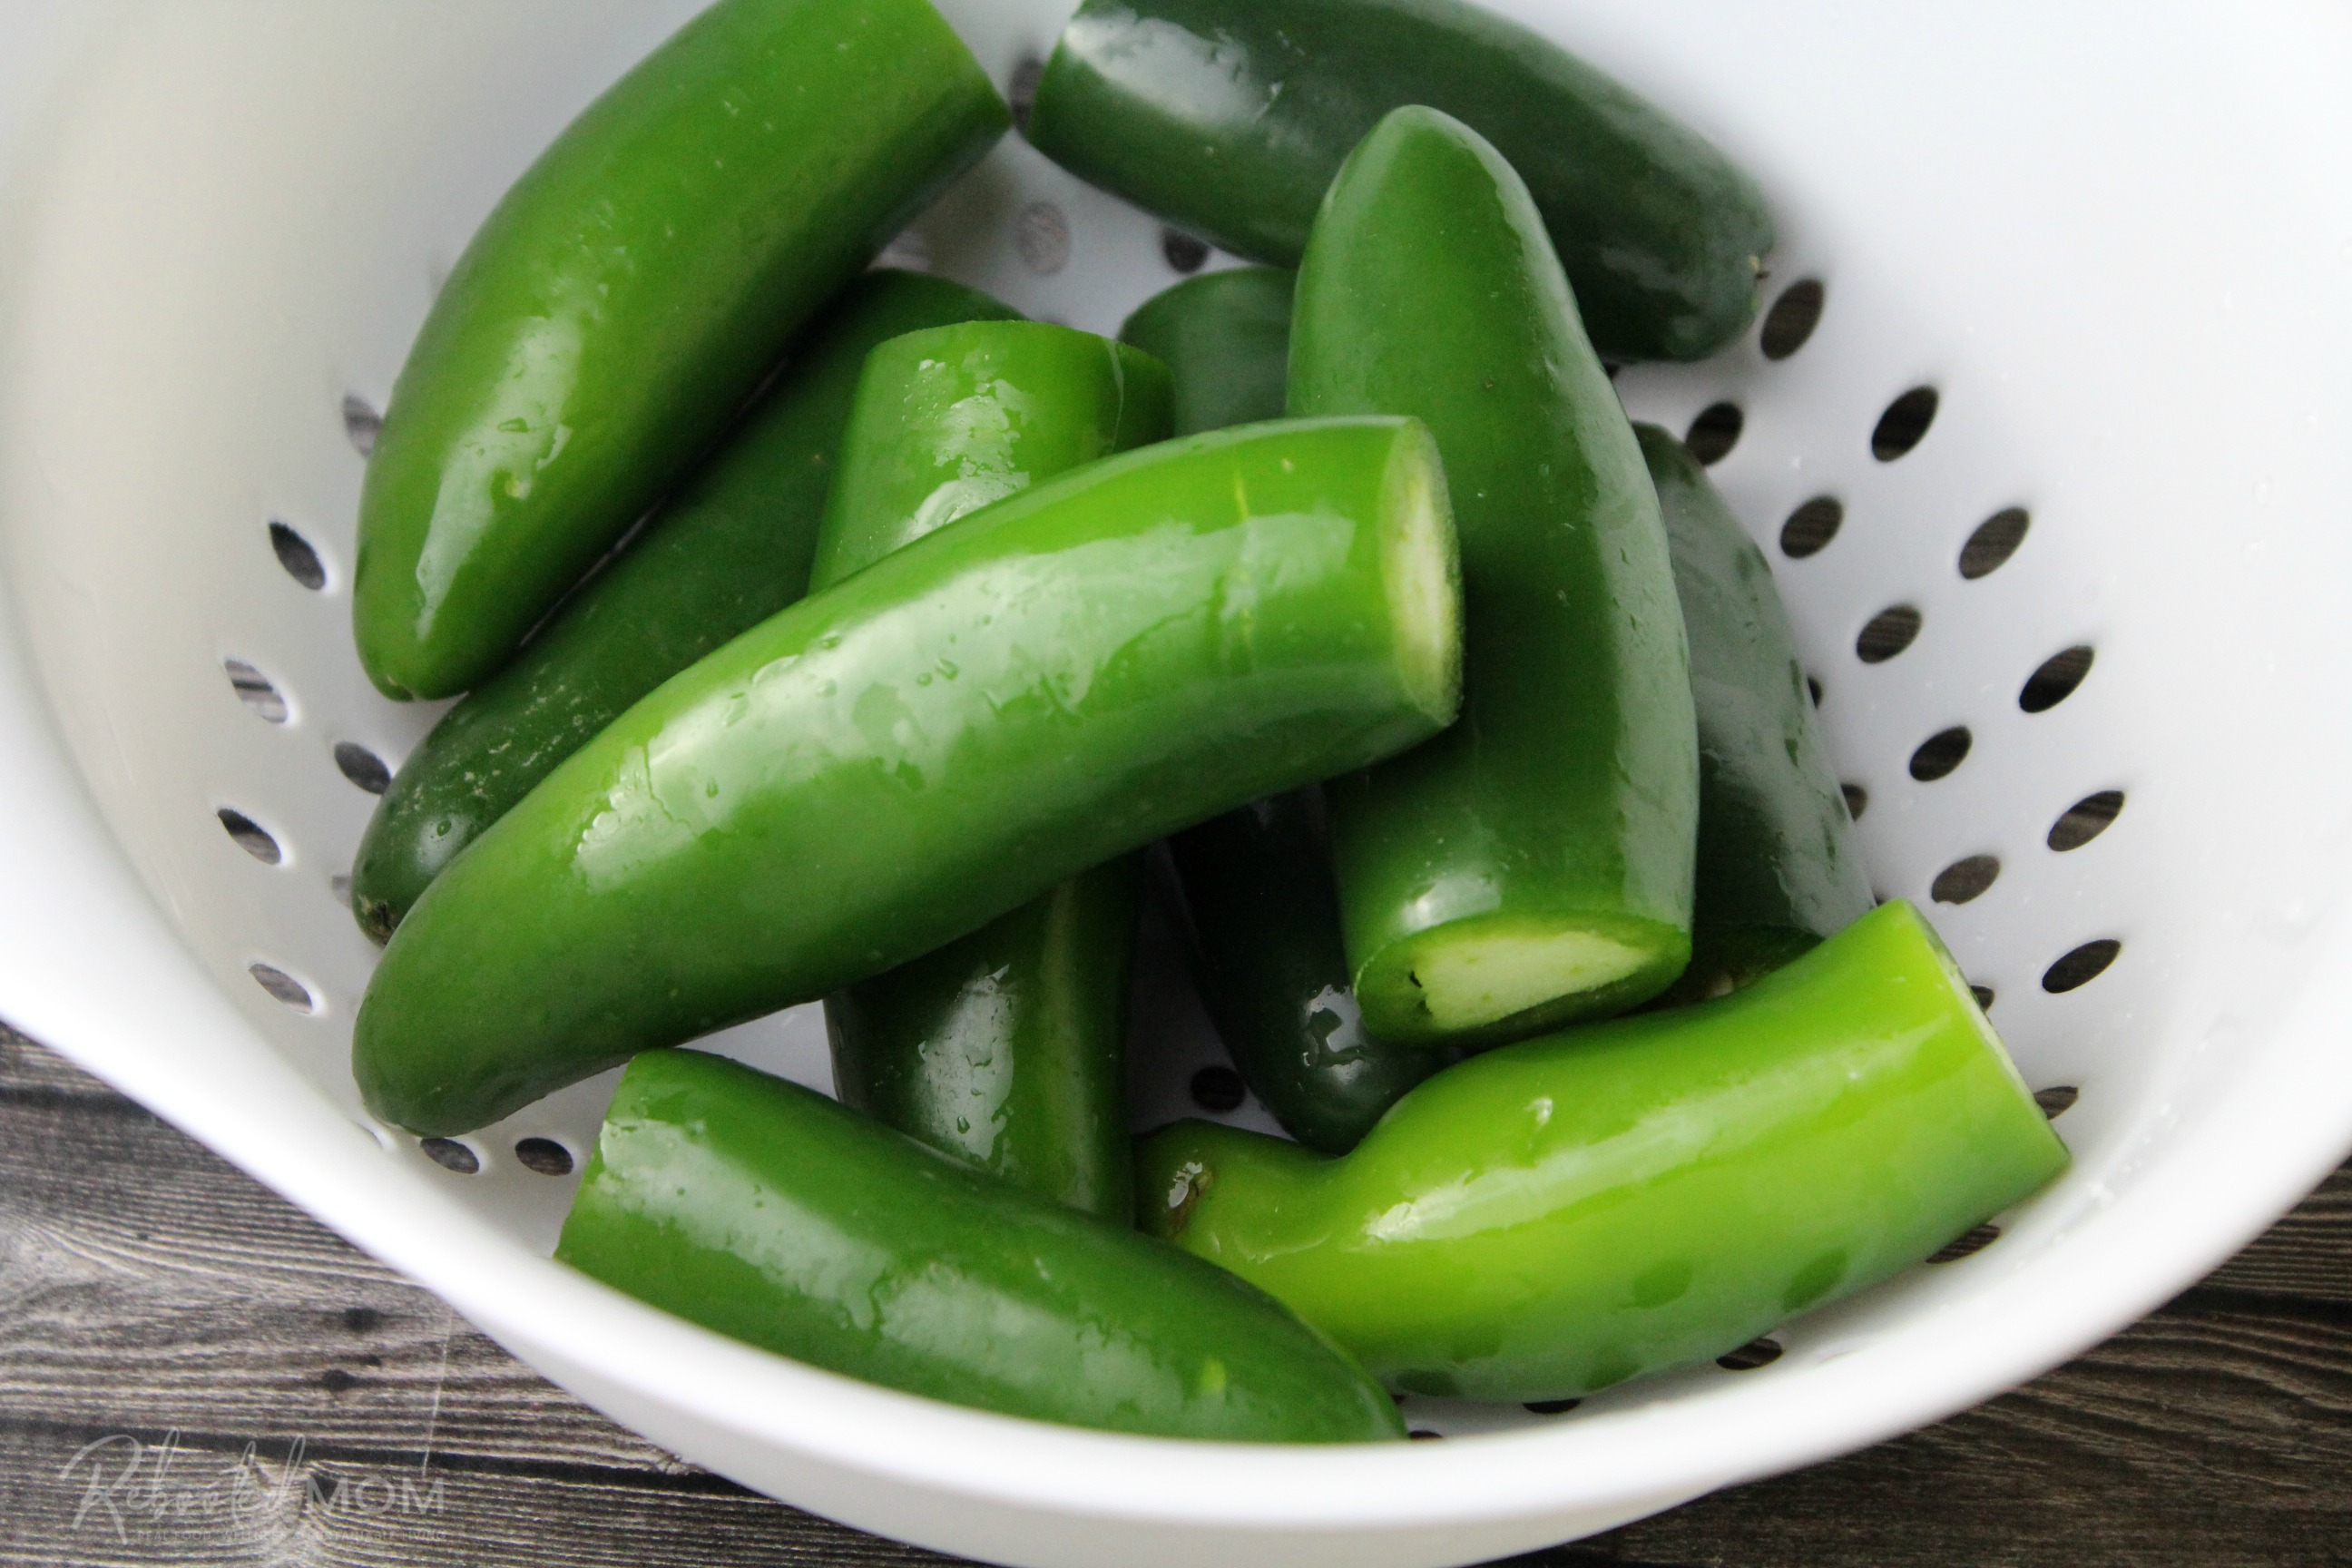 Whole jalapeño peppers in a colander